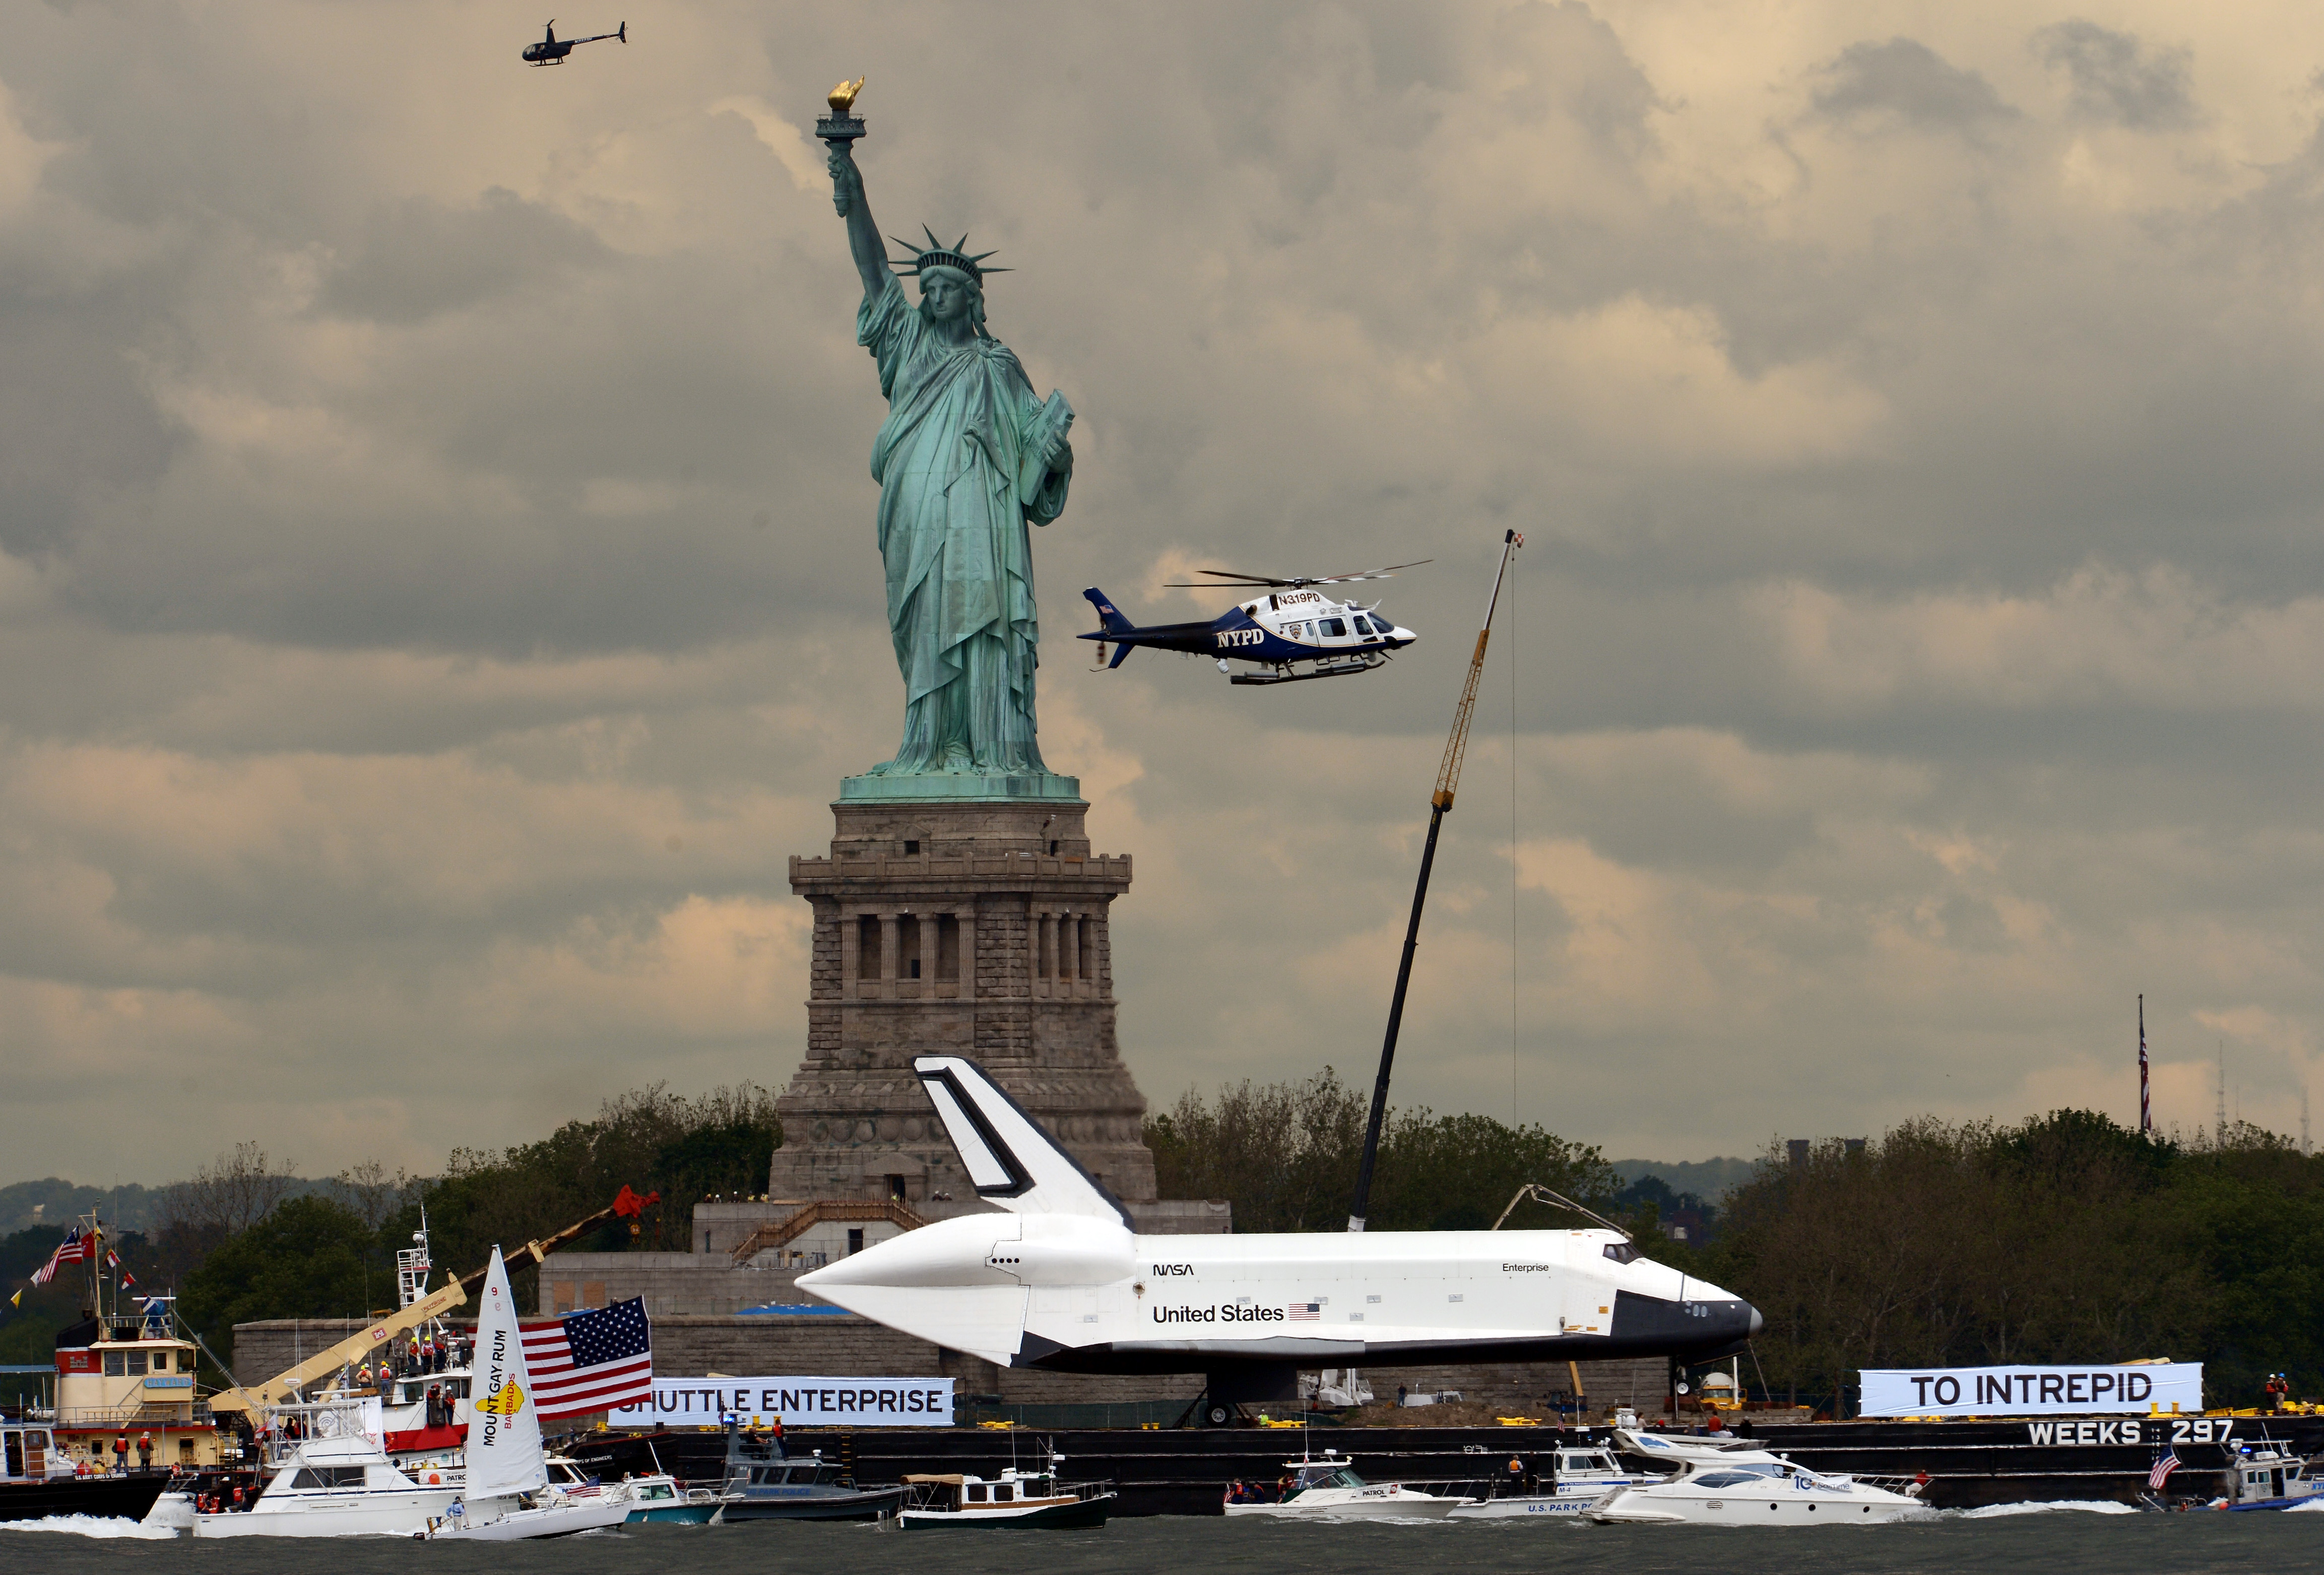 space shuttle enterprise in nyc - photo #11